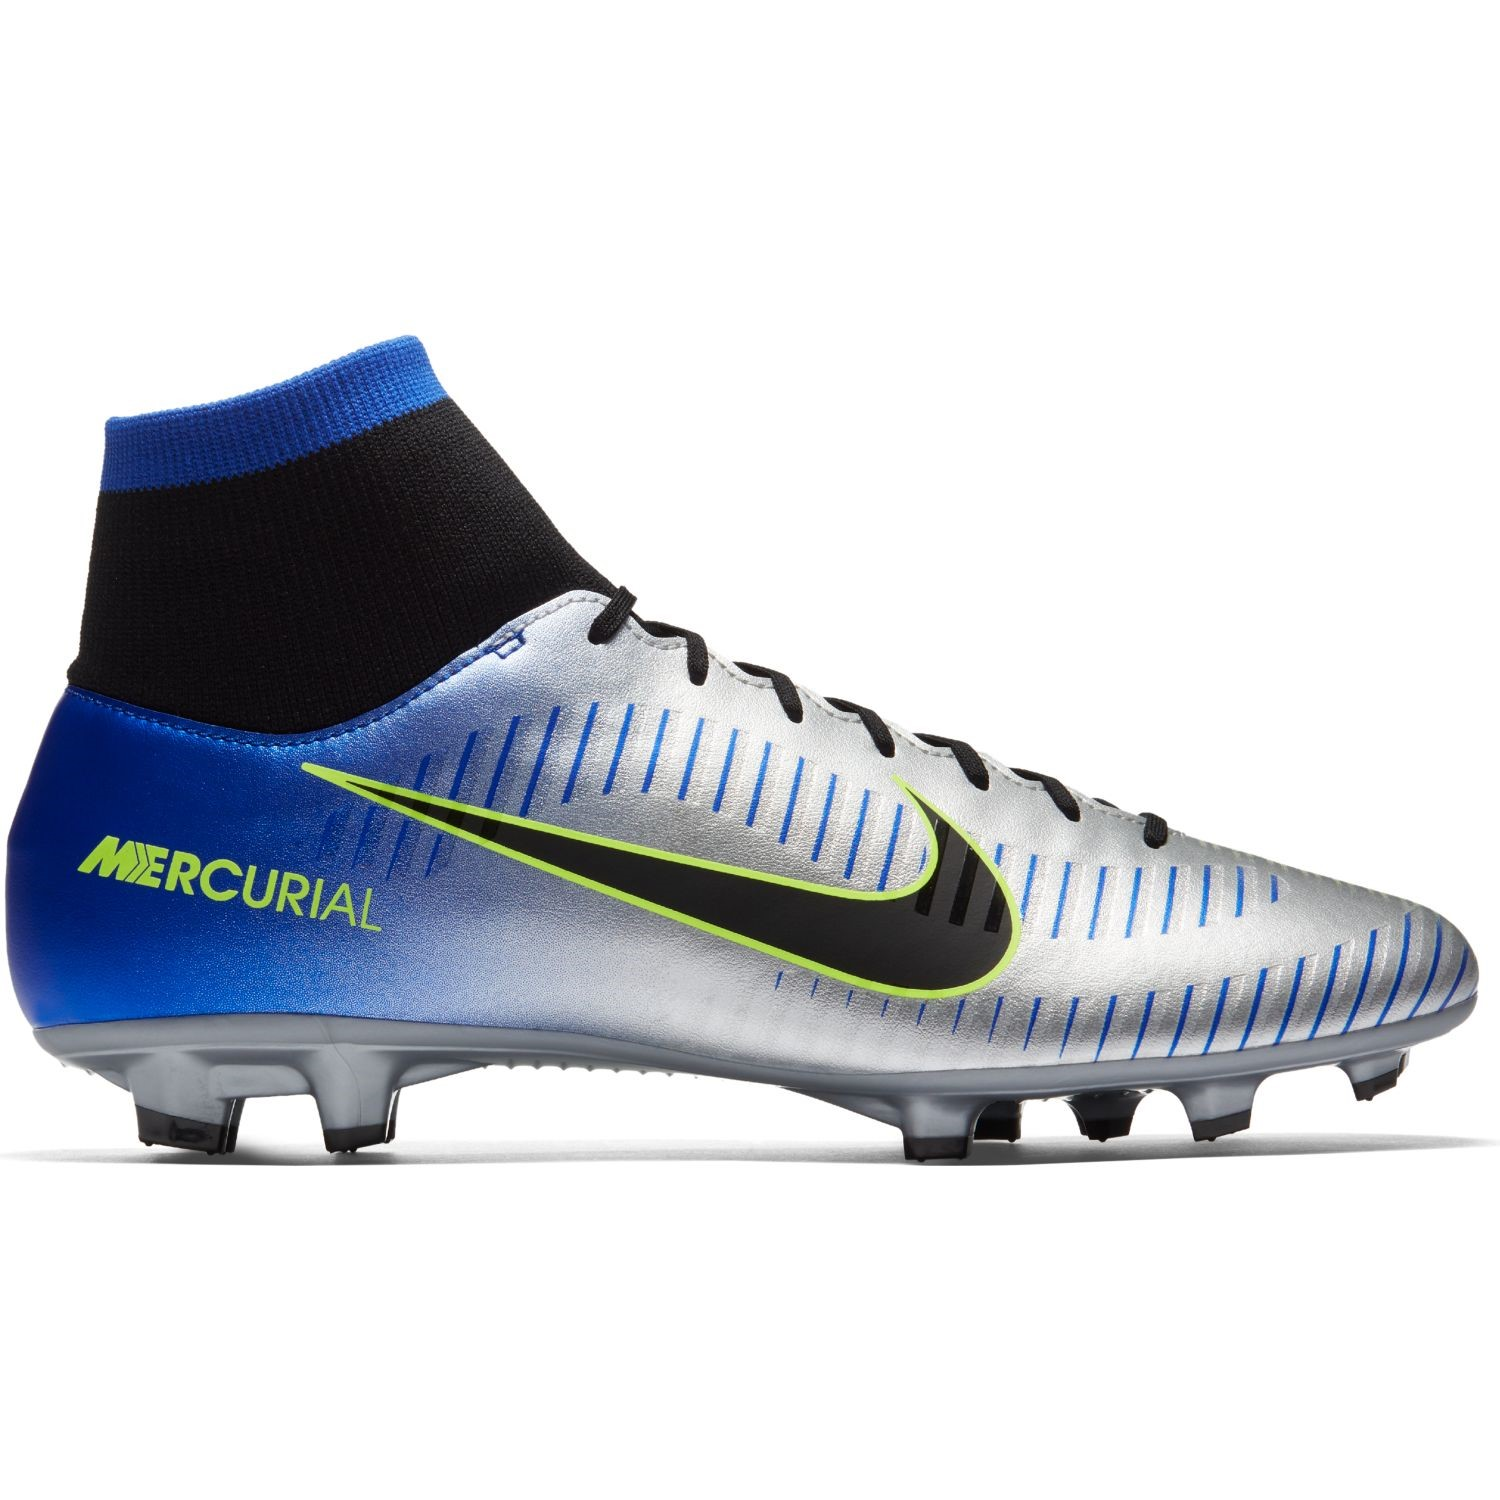 finest selection 6bec5 20e81 Nike Mercurial Victory VI Dynamic Fit Neymar FG - Mens Football Boots -  Racer Blue